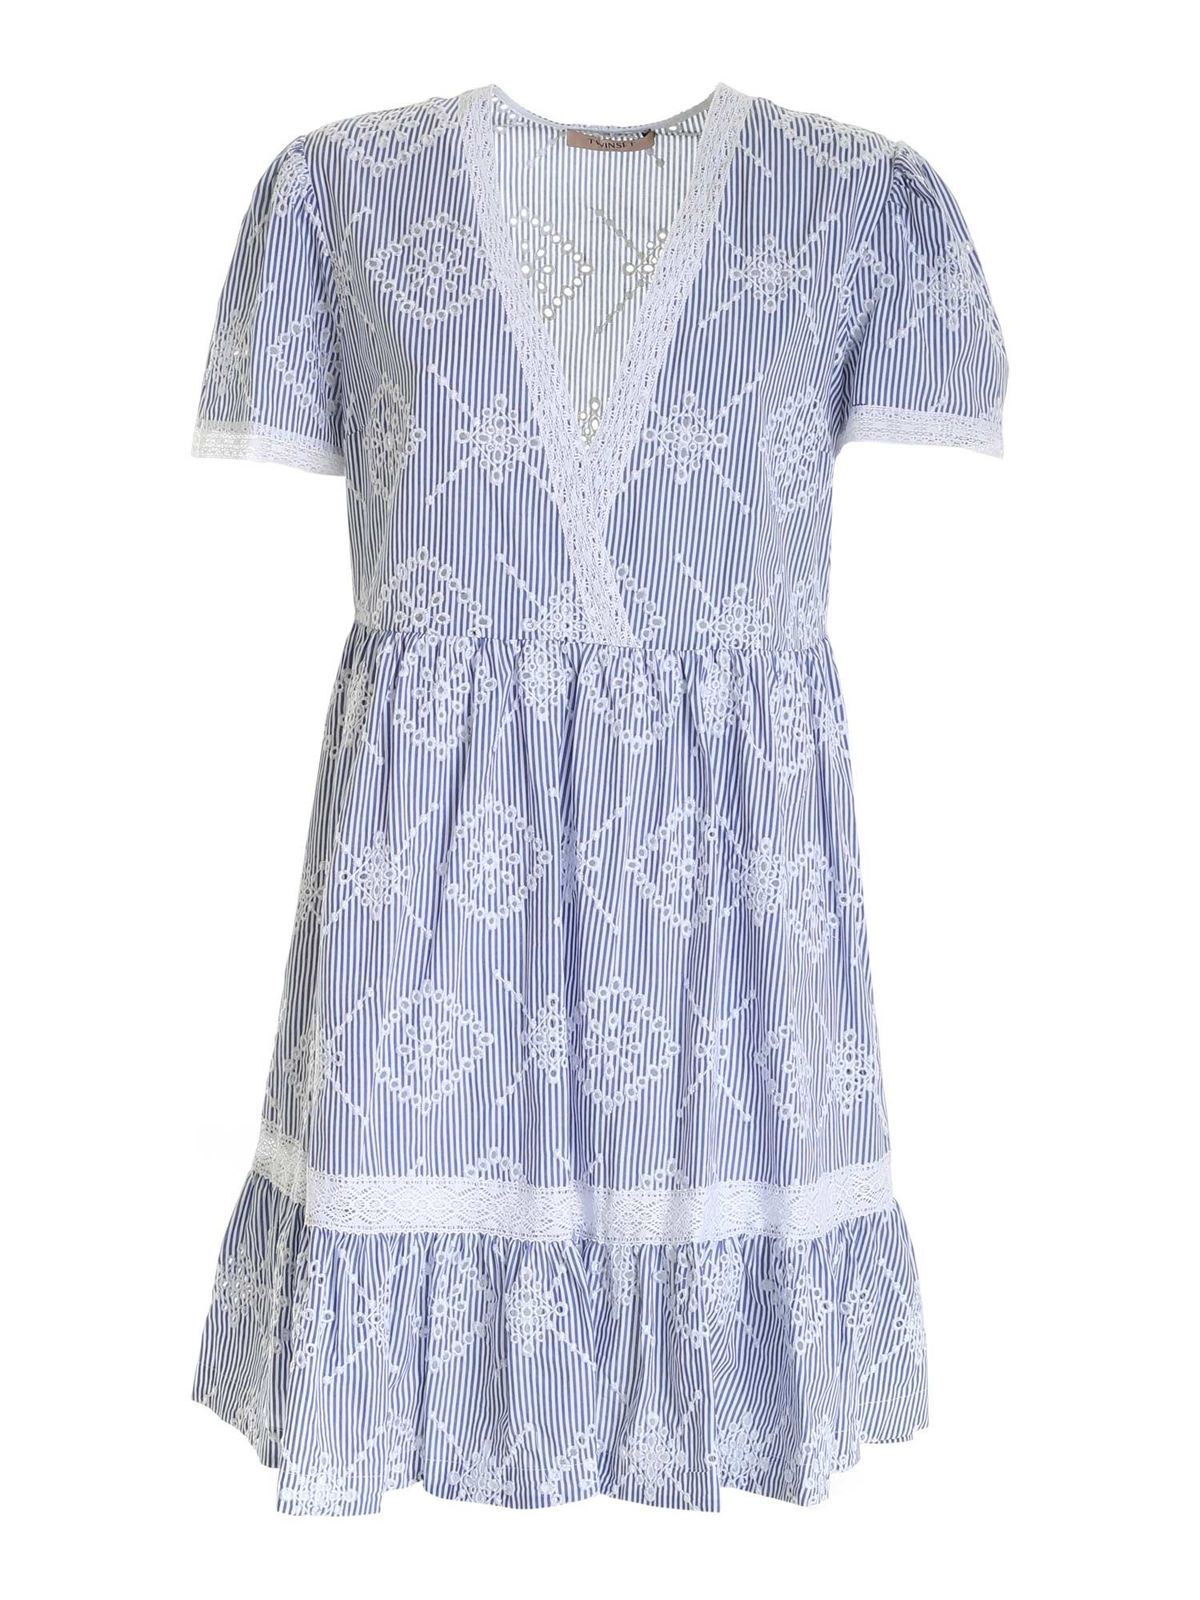 Twinset SANGALLO STRIPED DRESS IN BLUE AND WHITE